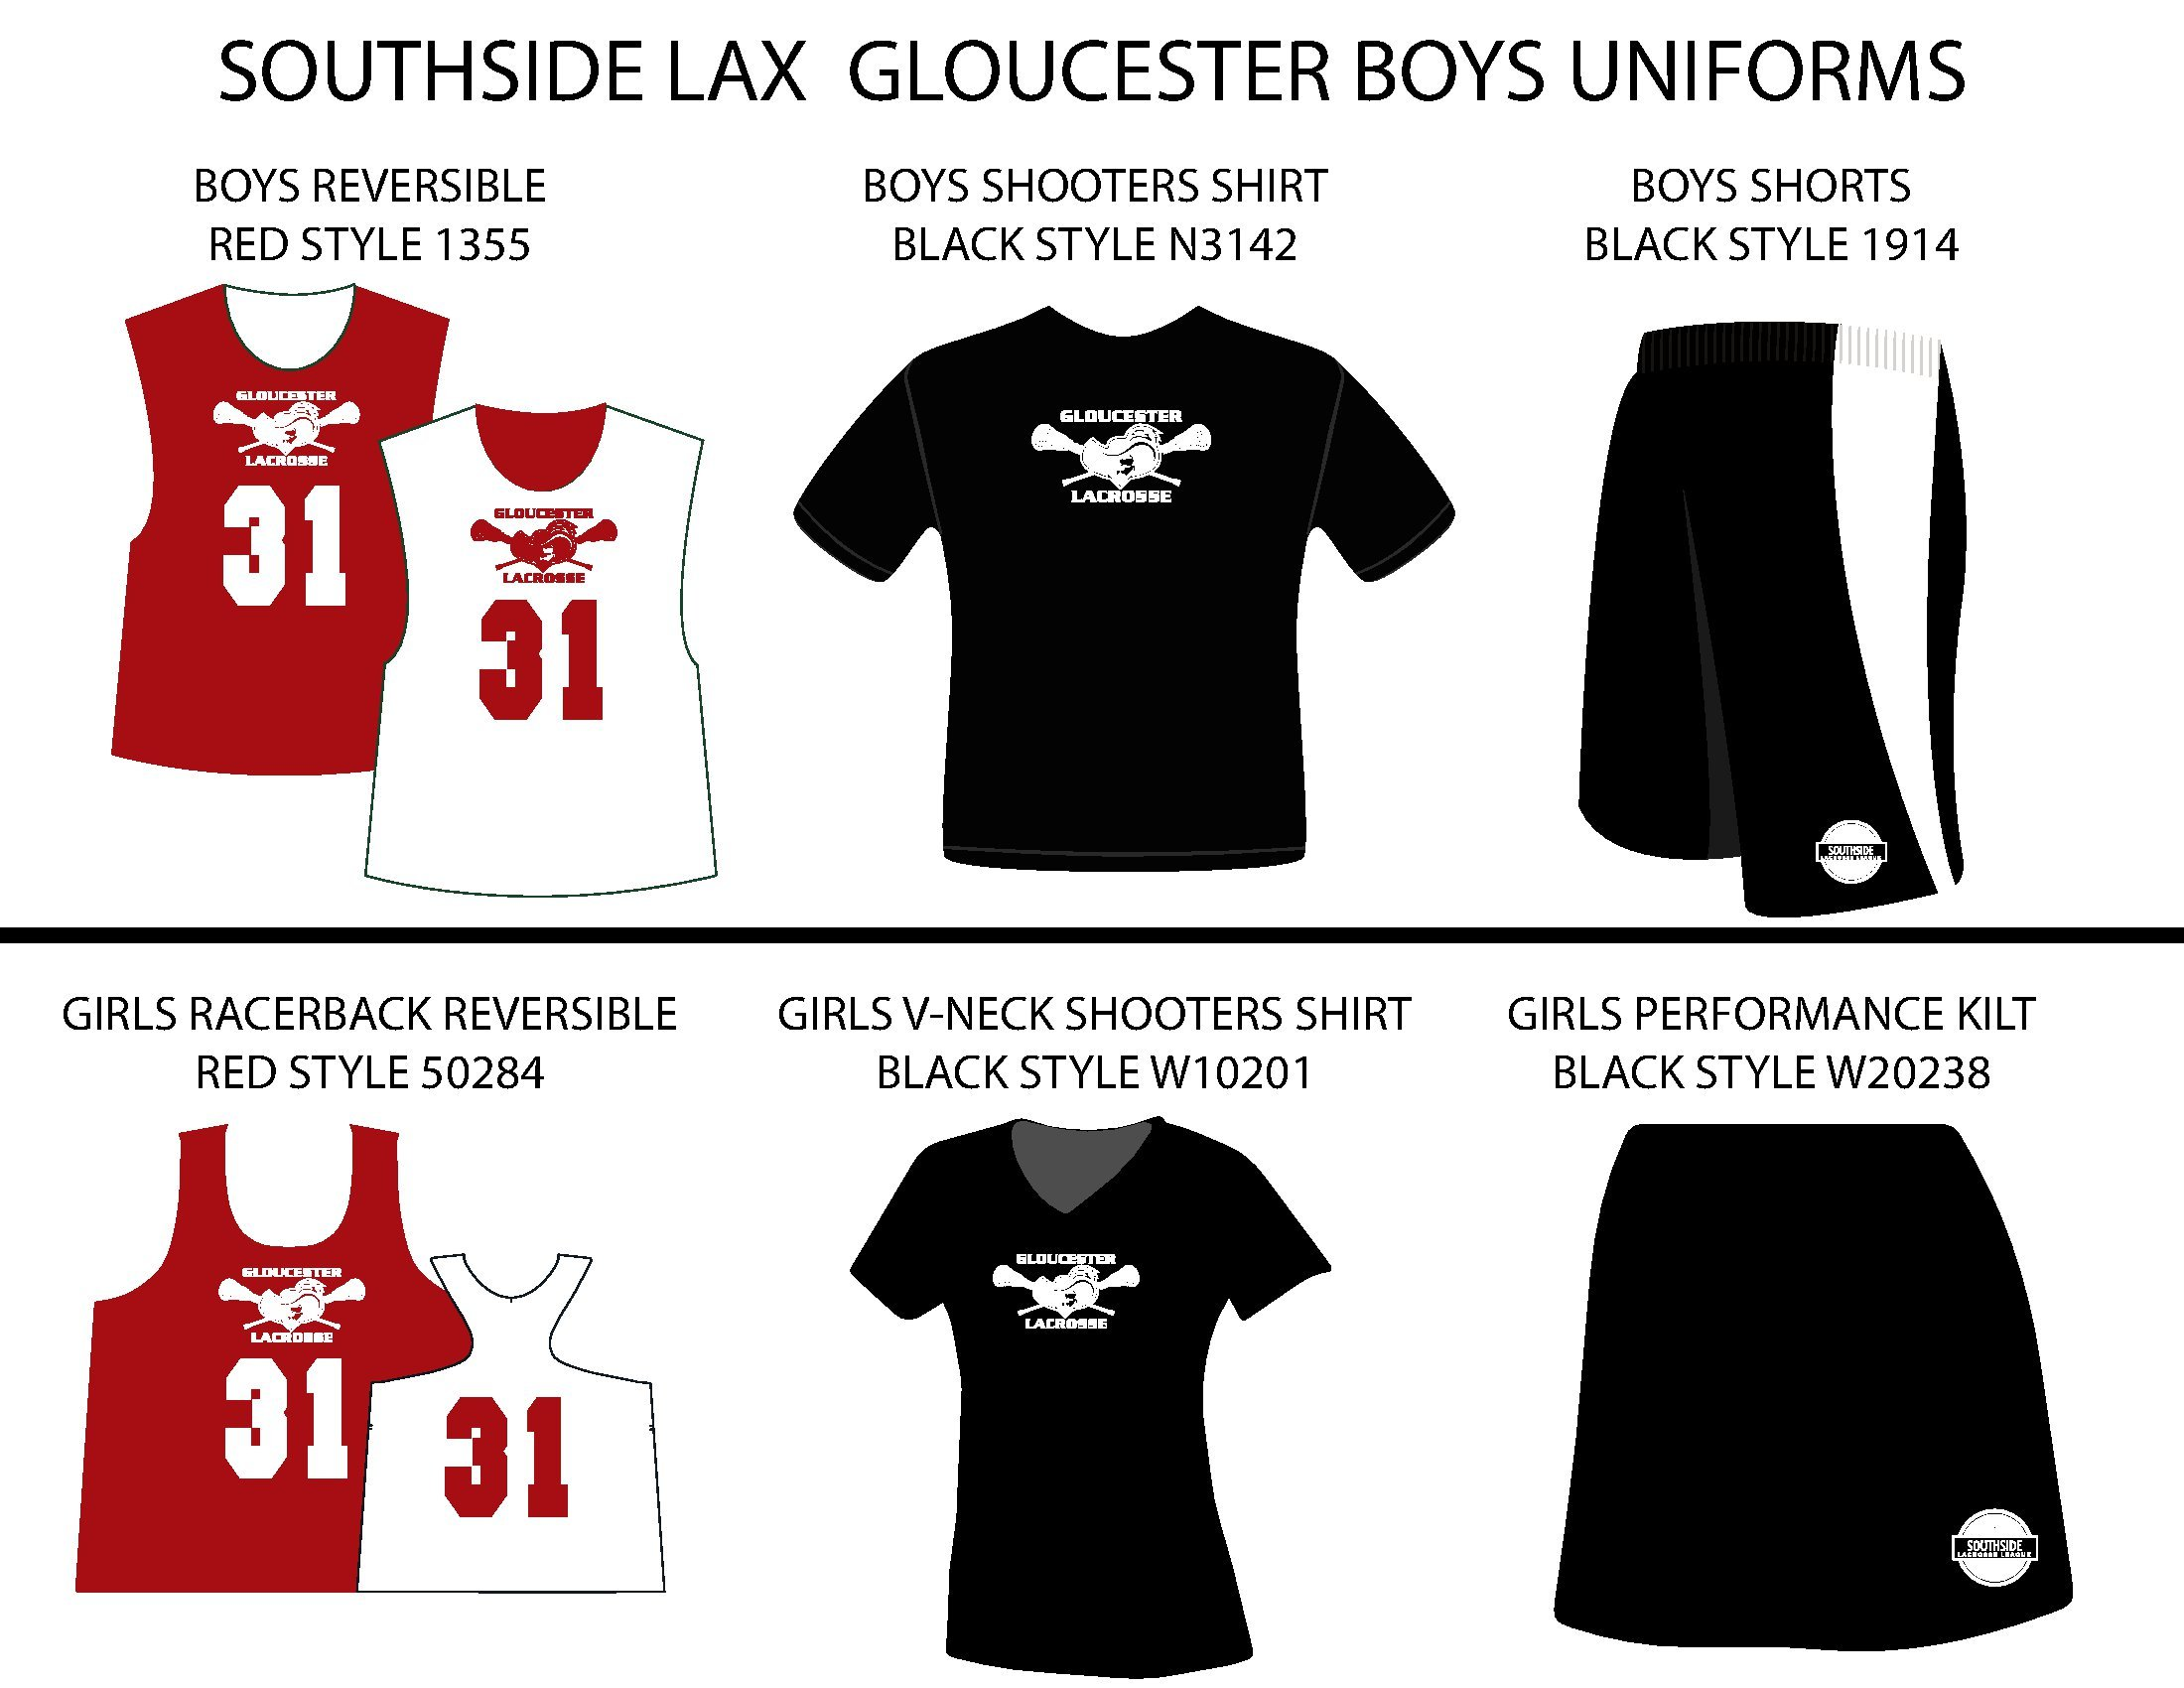 Southside Lacrosse Gloucester Uniforms